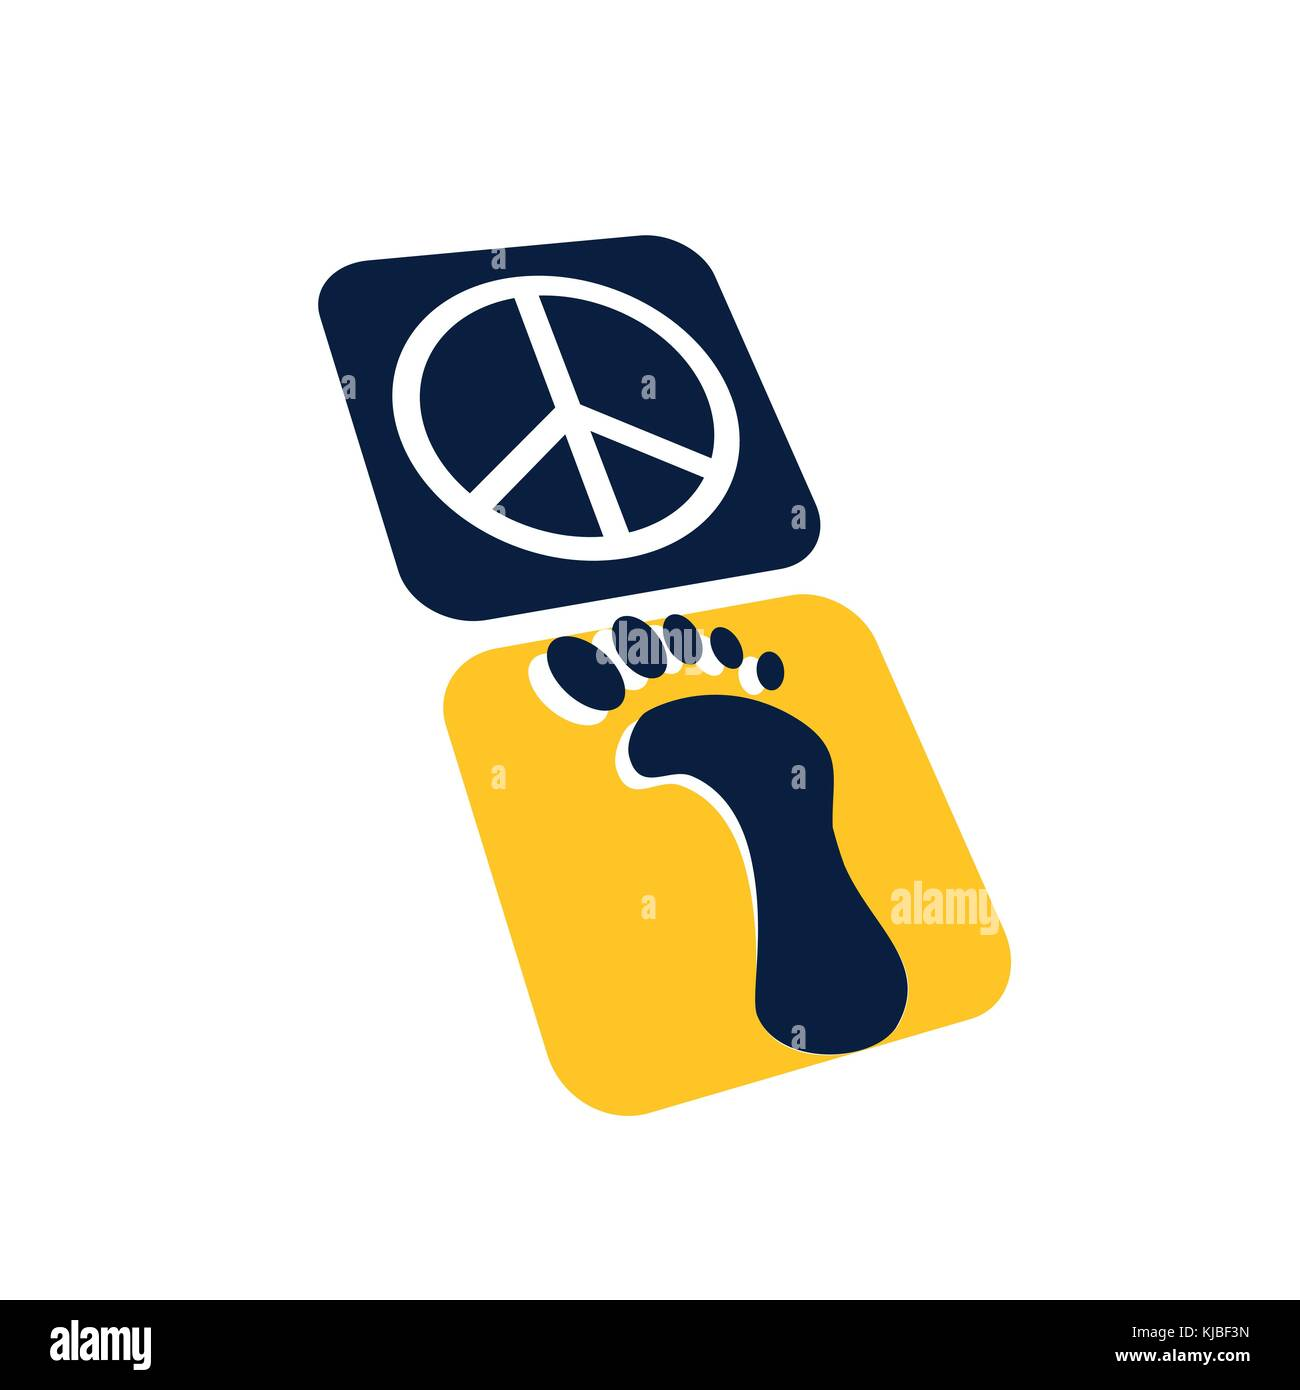 step to a peace symbol, footprint to peace symbol illustration, icon design, isolated on white background. - Stock Vector